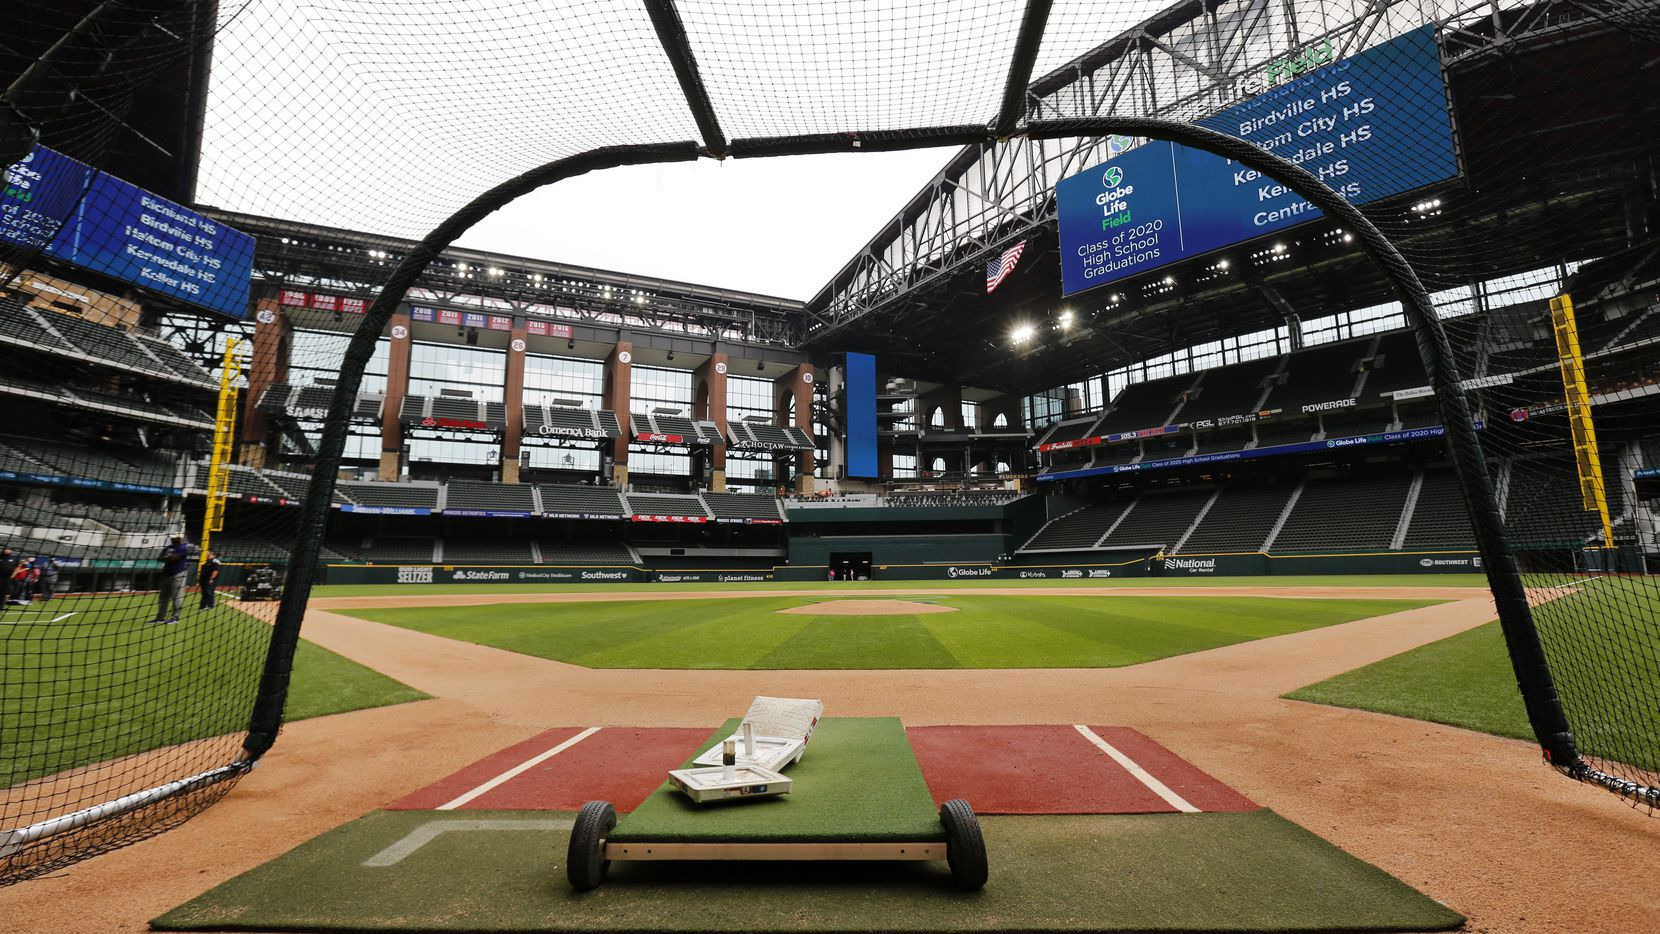 Texas Rangers players have been using a batting cage on the field of the newly completed Globe Life Field in Arlington, Texas, (Tom Fox/The Dallas Morning News)